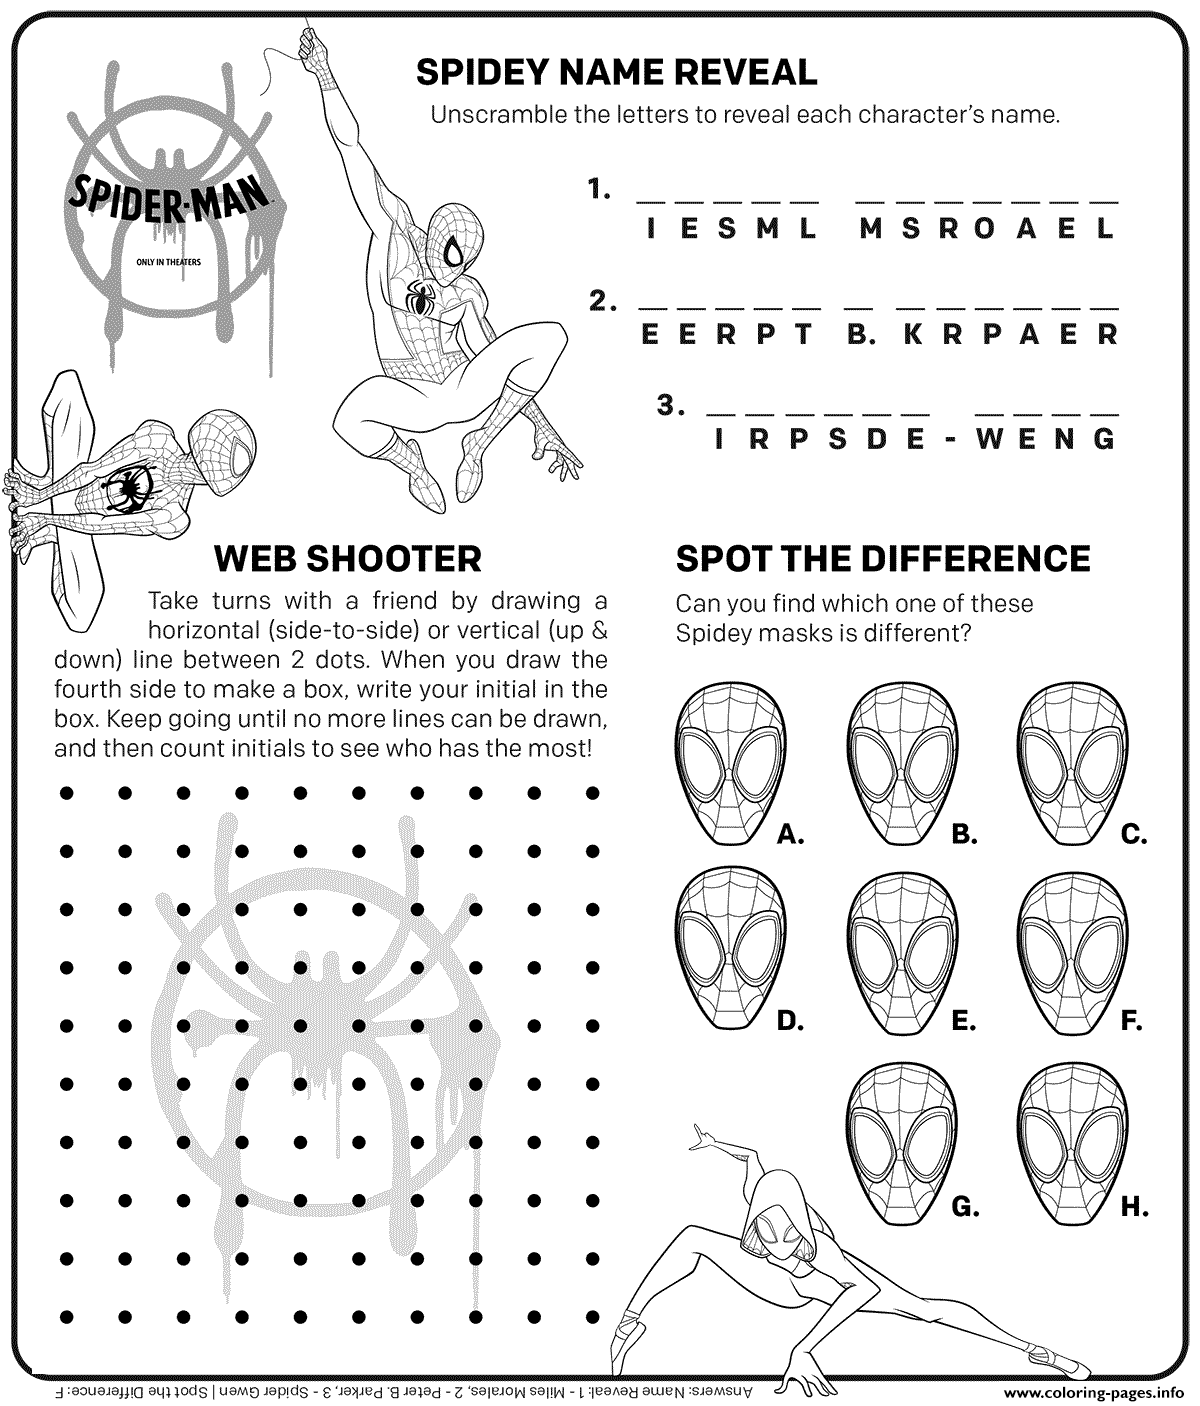 Spider Man Itsv Coloring Activities Coloring Pages Printable